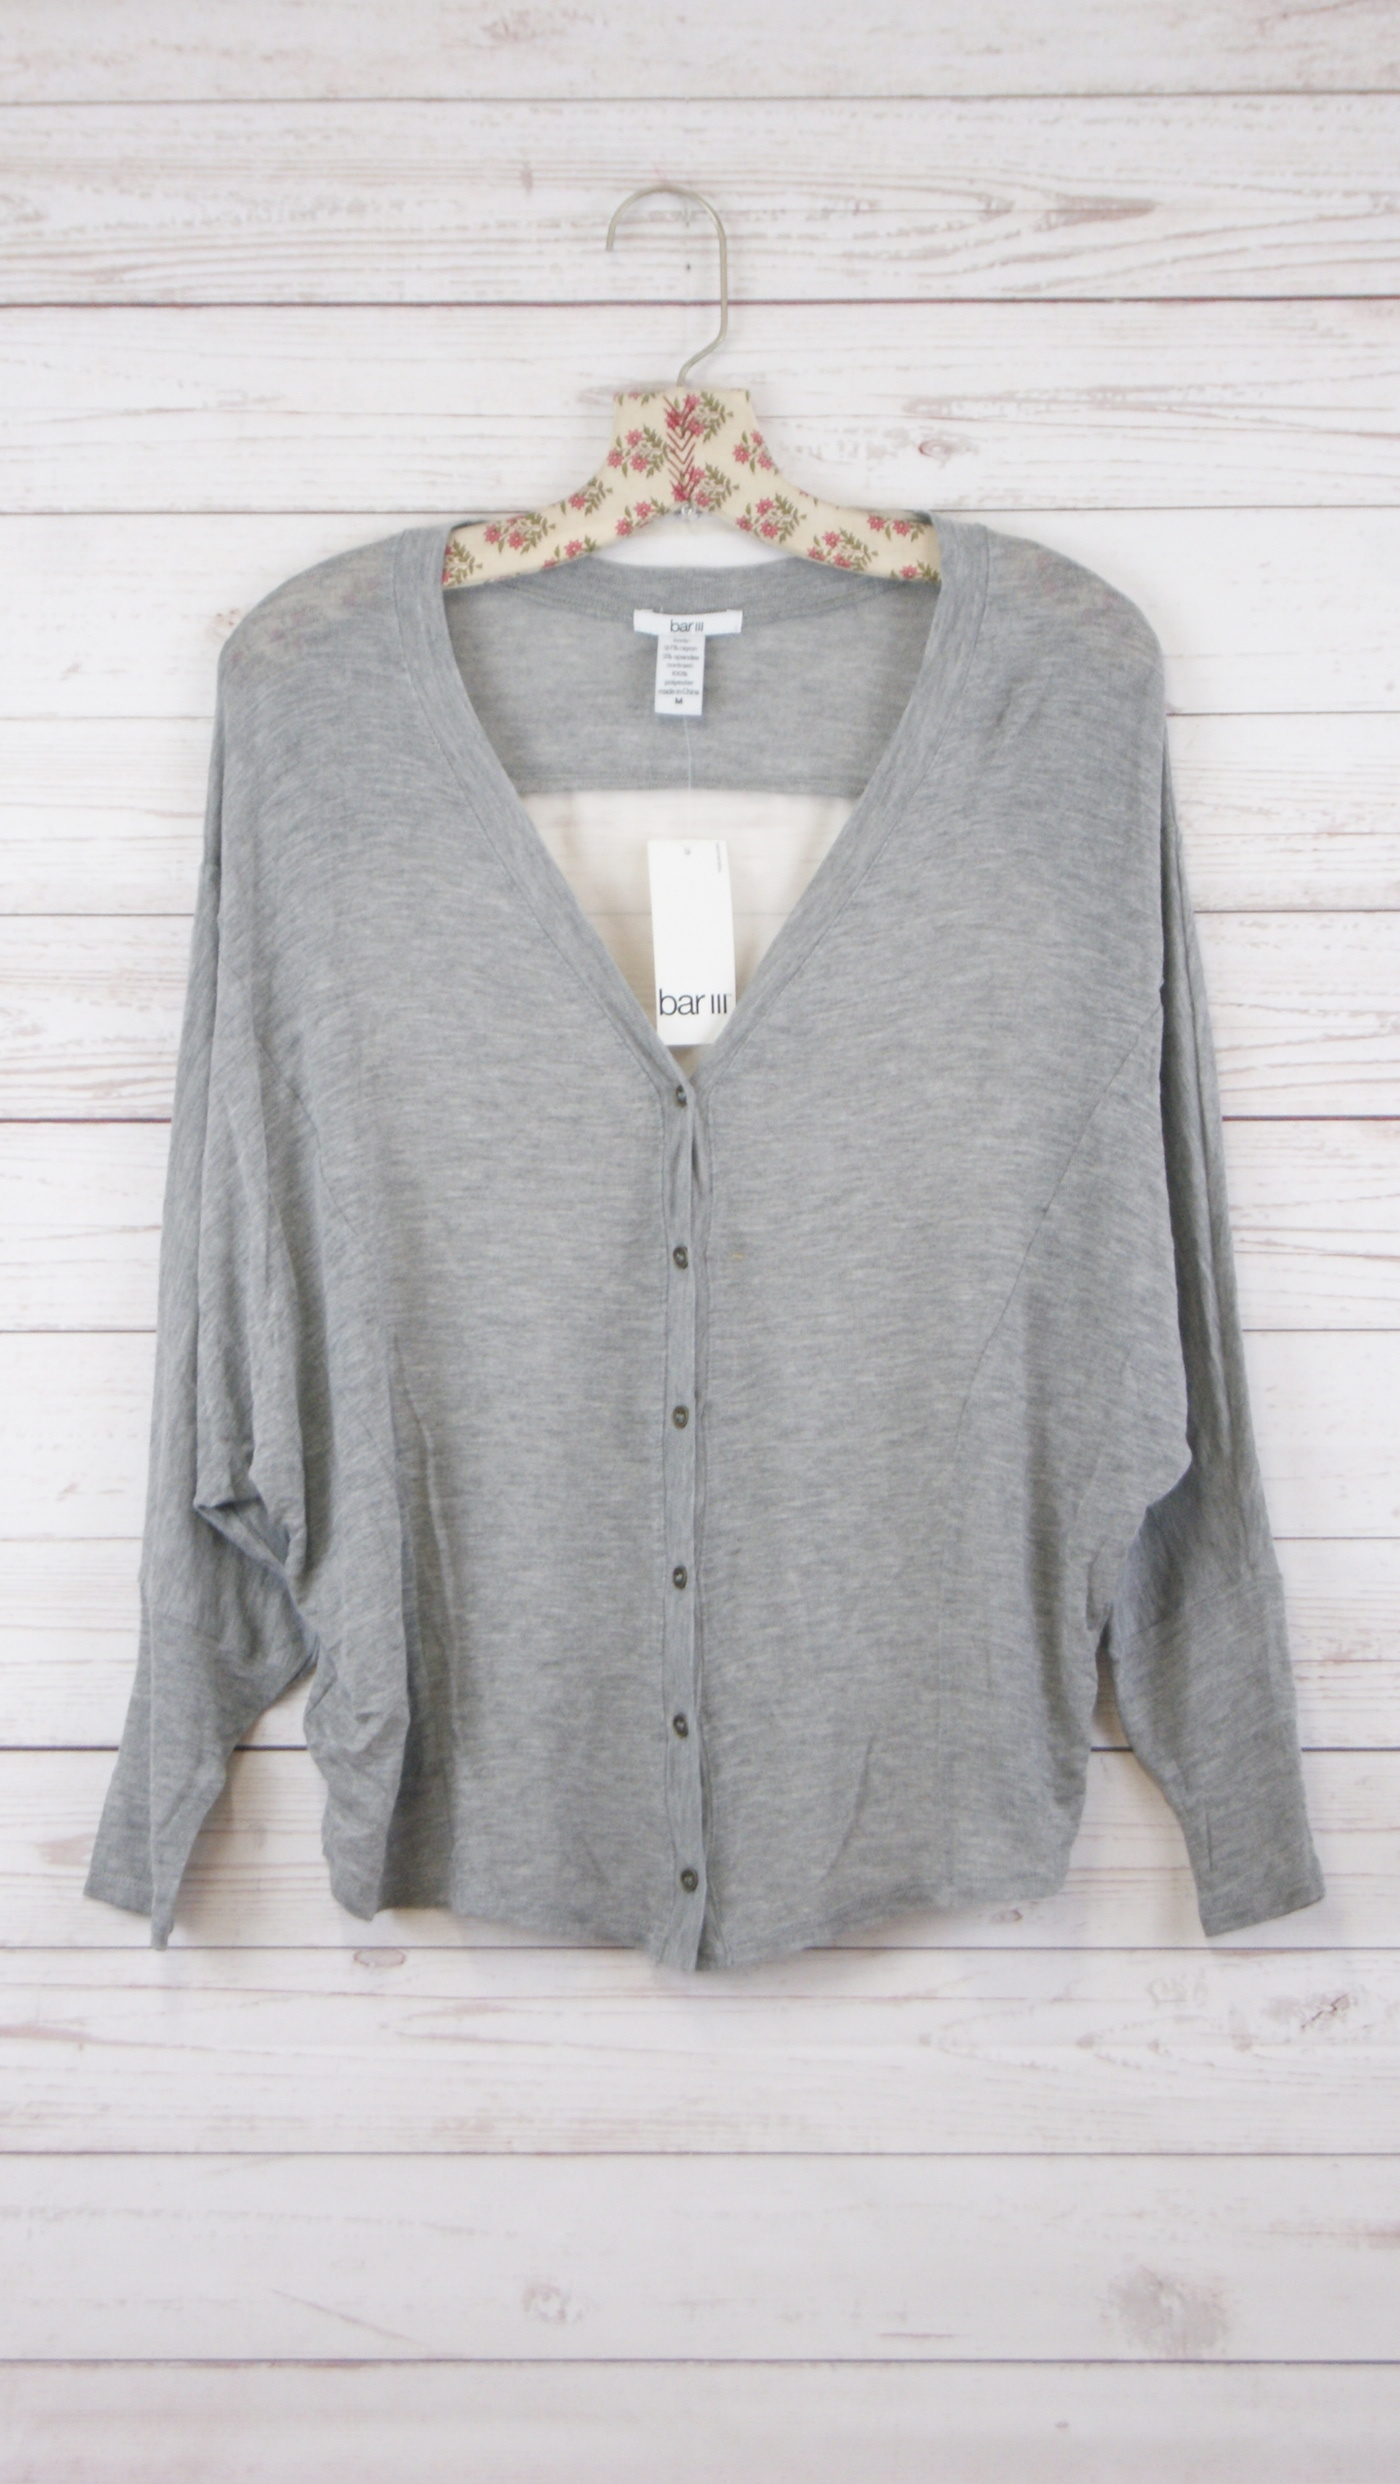 New-Womens-Bar-Iii-Long-Sleeve-Cardigan-Sweater-Sweatshirt-Heather-Gray-M-49 thumbnail 2